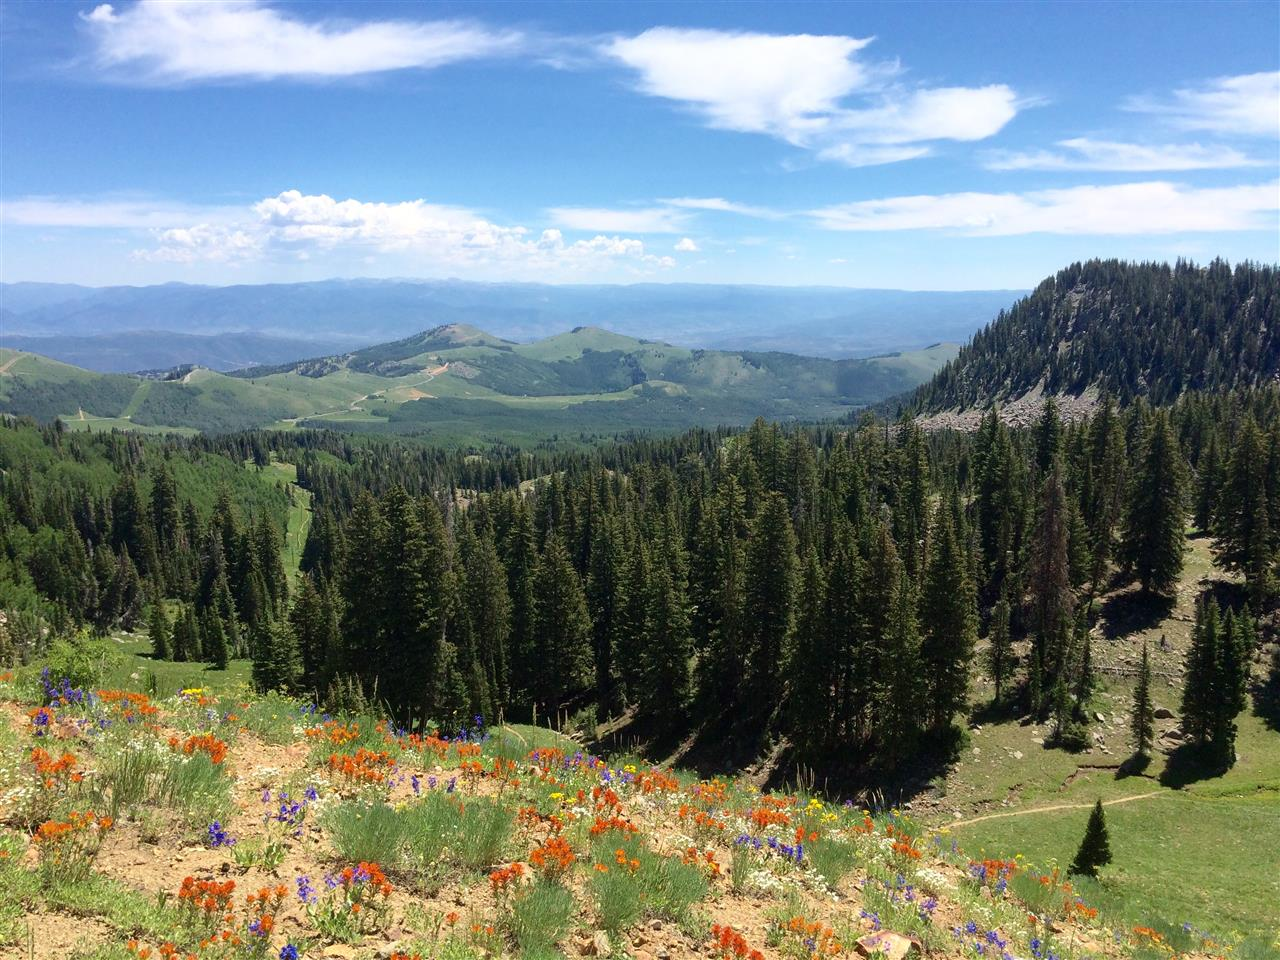 A view from a hike at Peak 10420' properly named per its elevation at Guardsman's Pass. #hike #guardsmanspass #deervalley #midway #parkcity #Utah #wildflowers #leadingrelocal